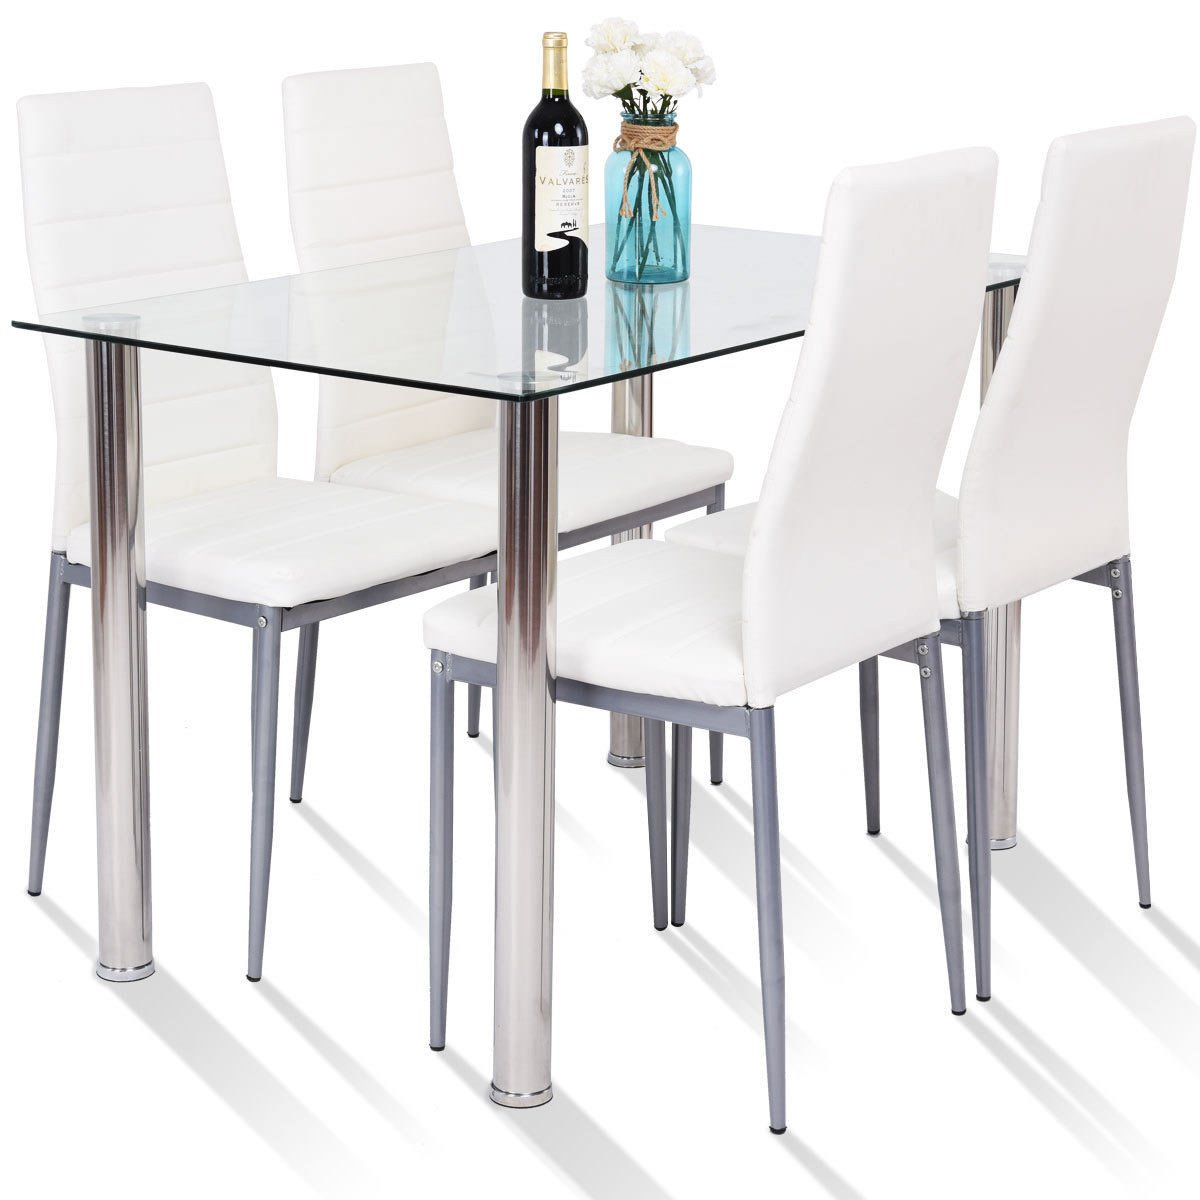 5 Piece Glass & Metal Dining Set